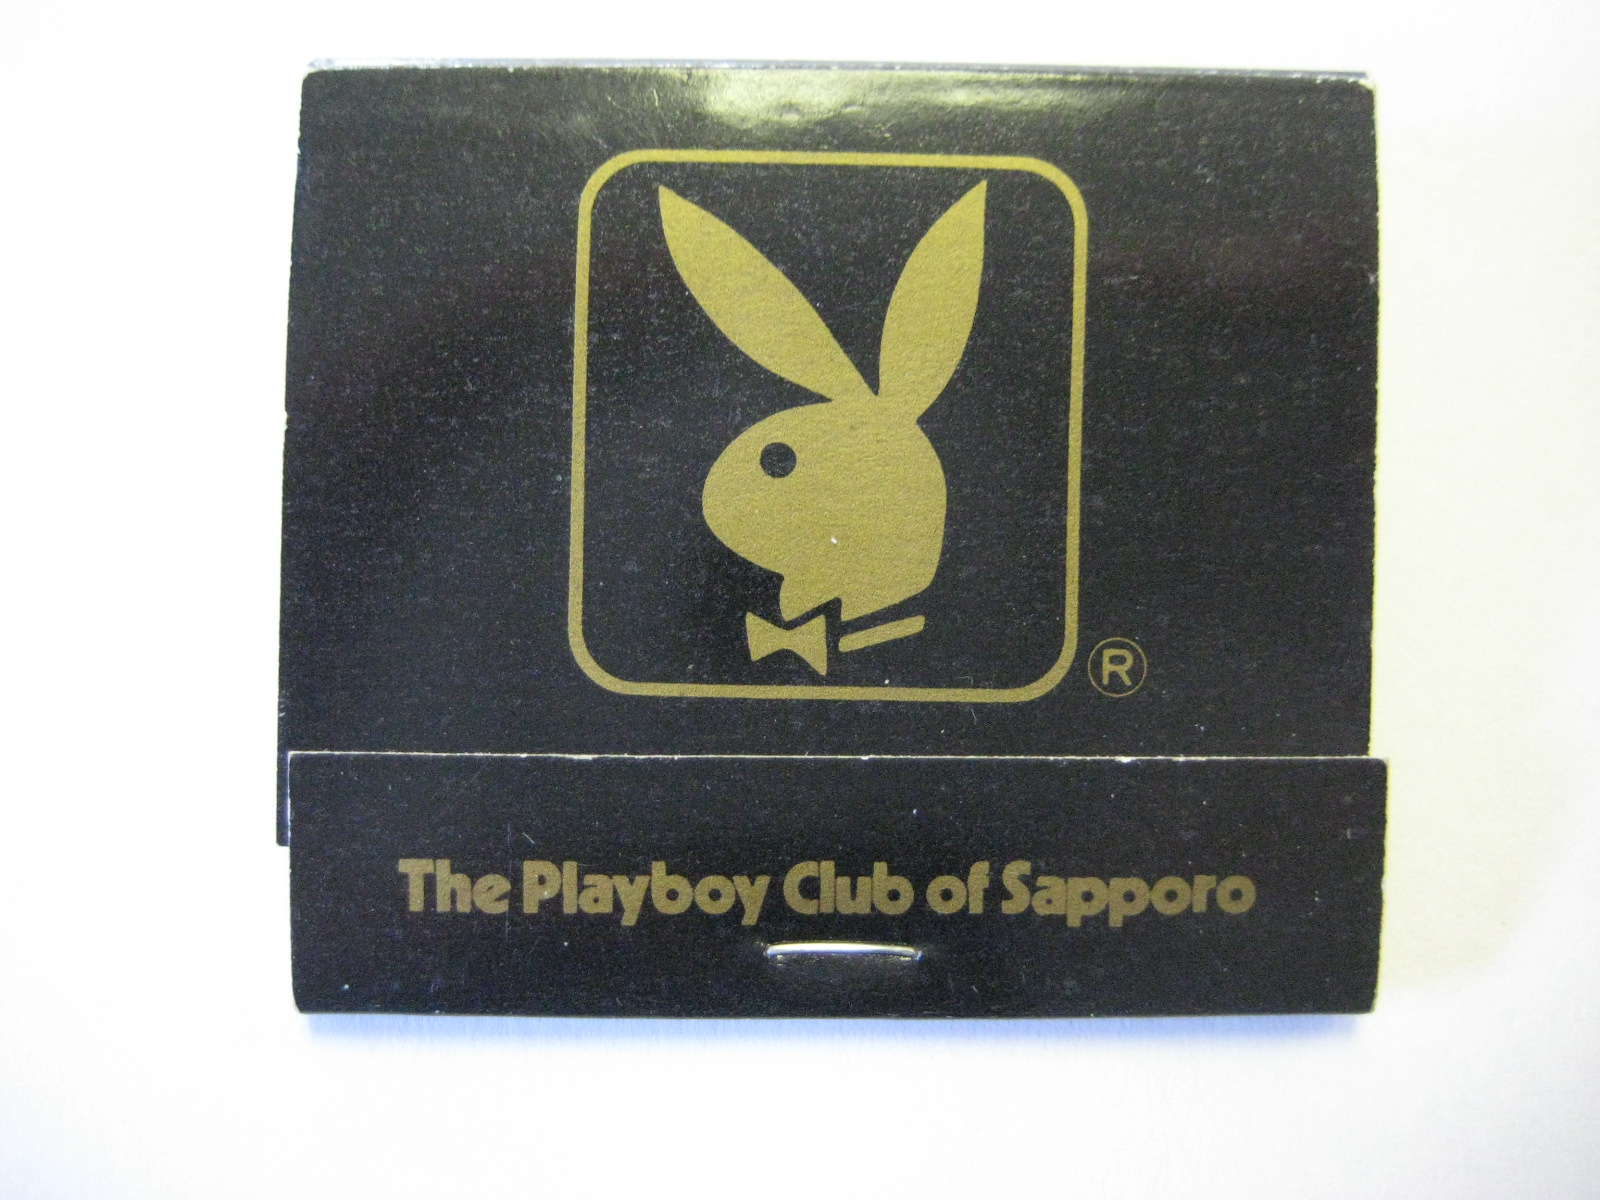 Playboy Club of Sapporo Matches